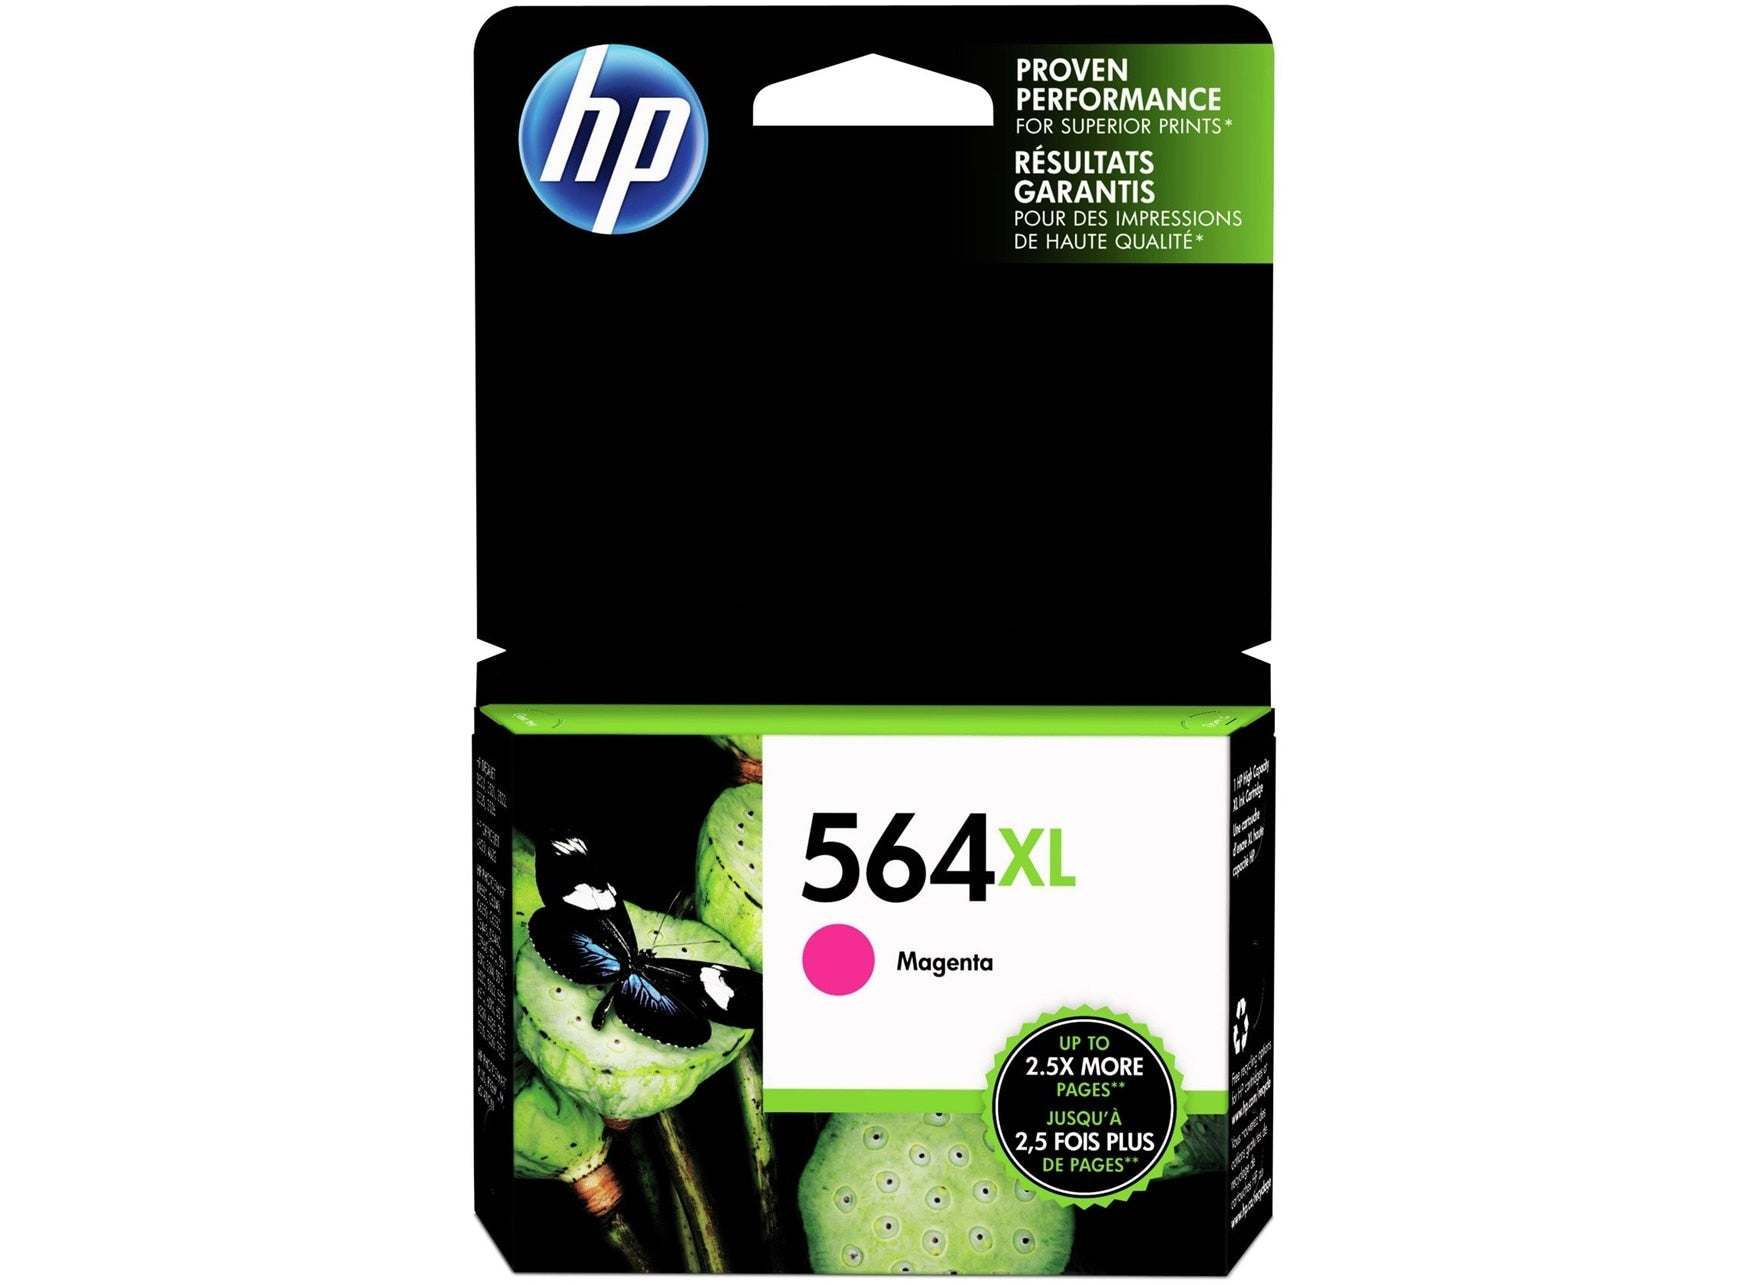 HP 564XL Ink Cartridge, Magenta - 1-pack